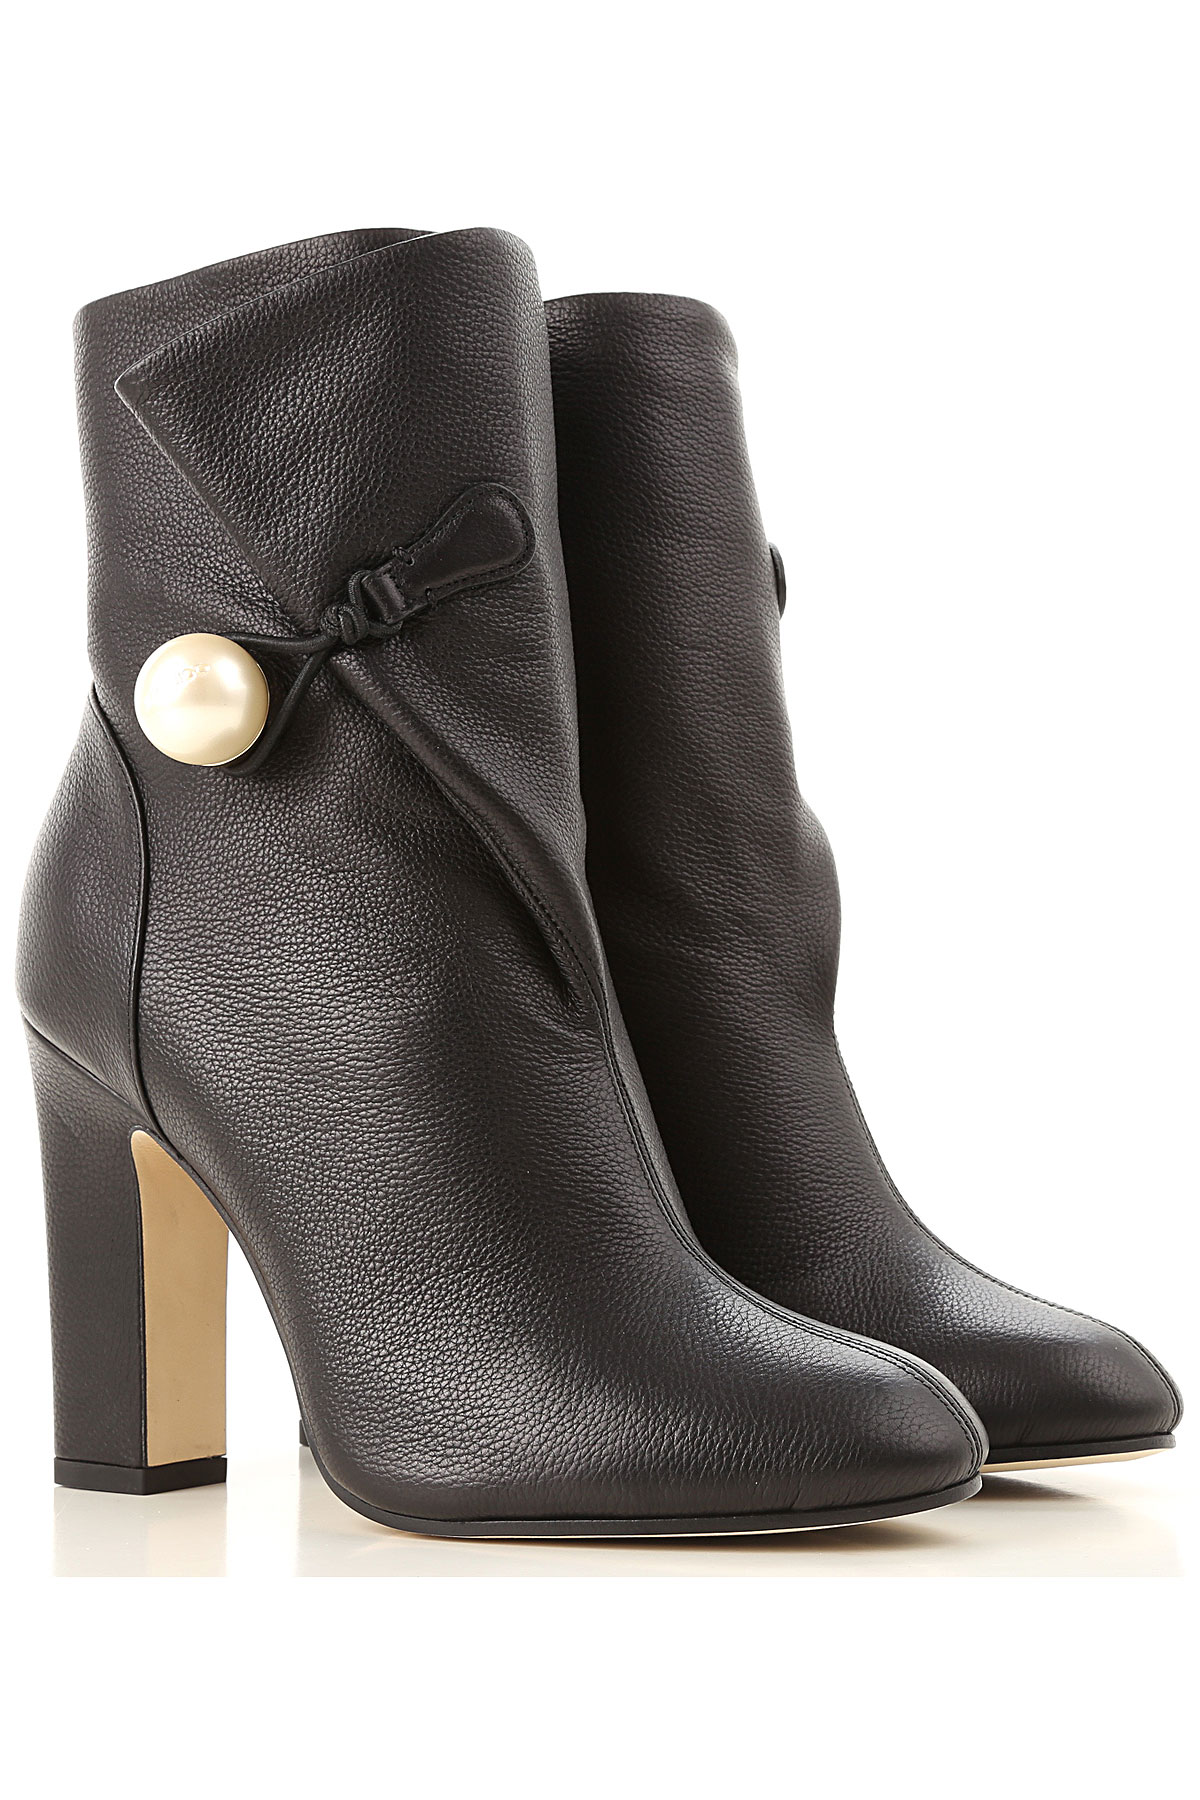 Jimmy Choo Boots for Women, Booties On Sale in Outlet, Black, Leather, 2019, 10 7